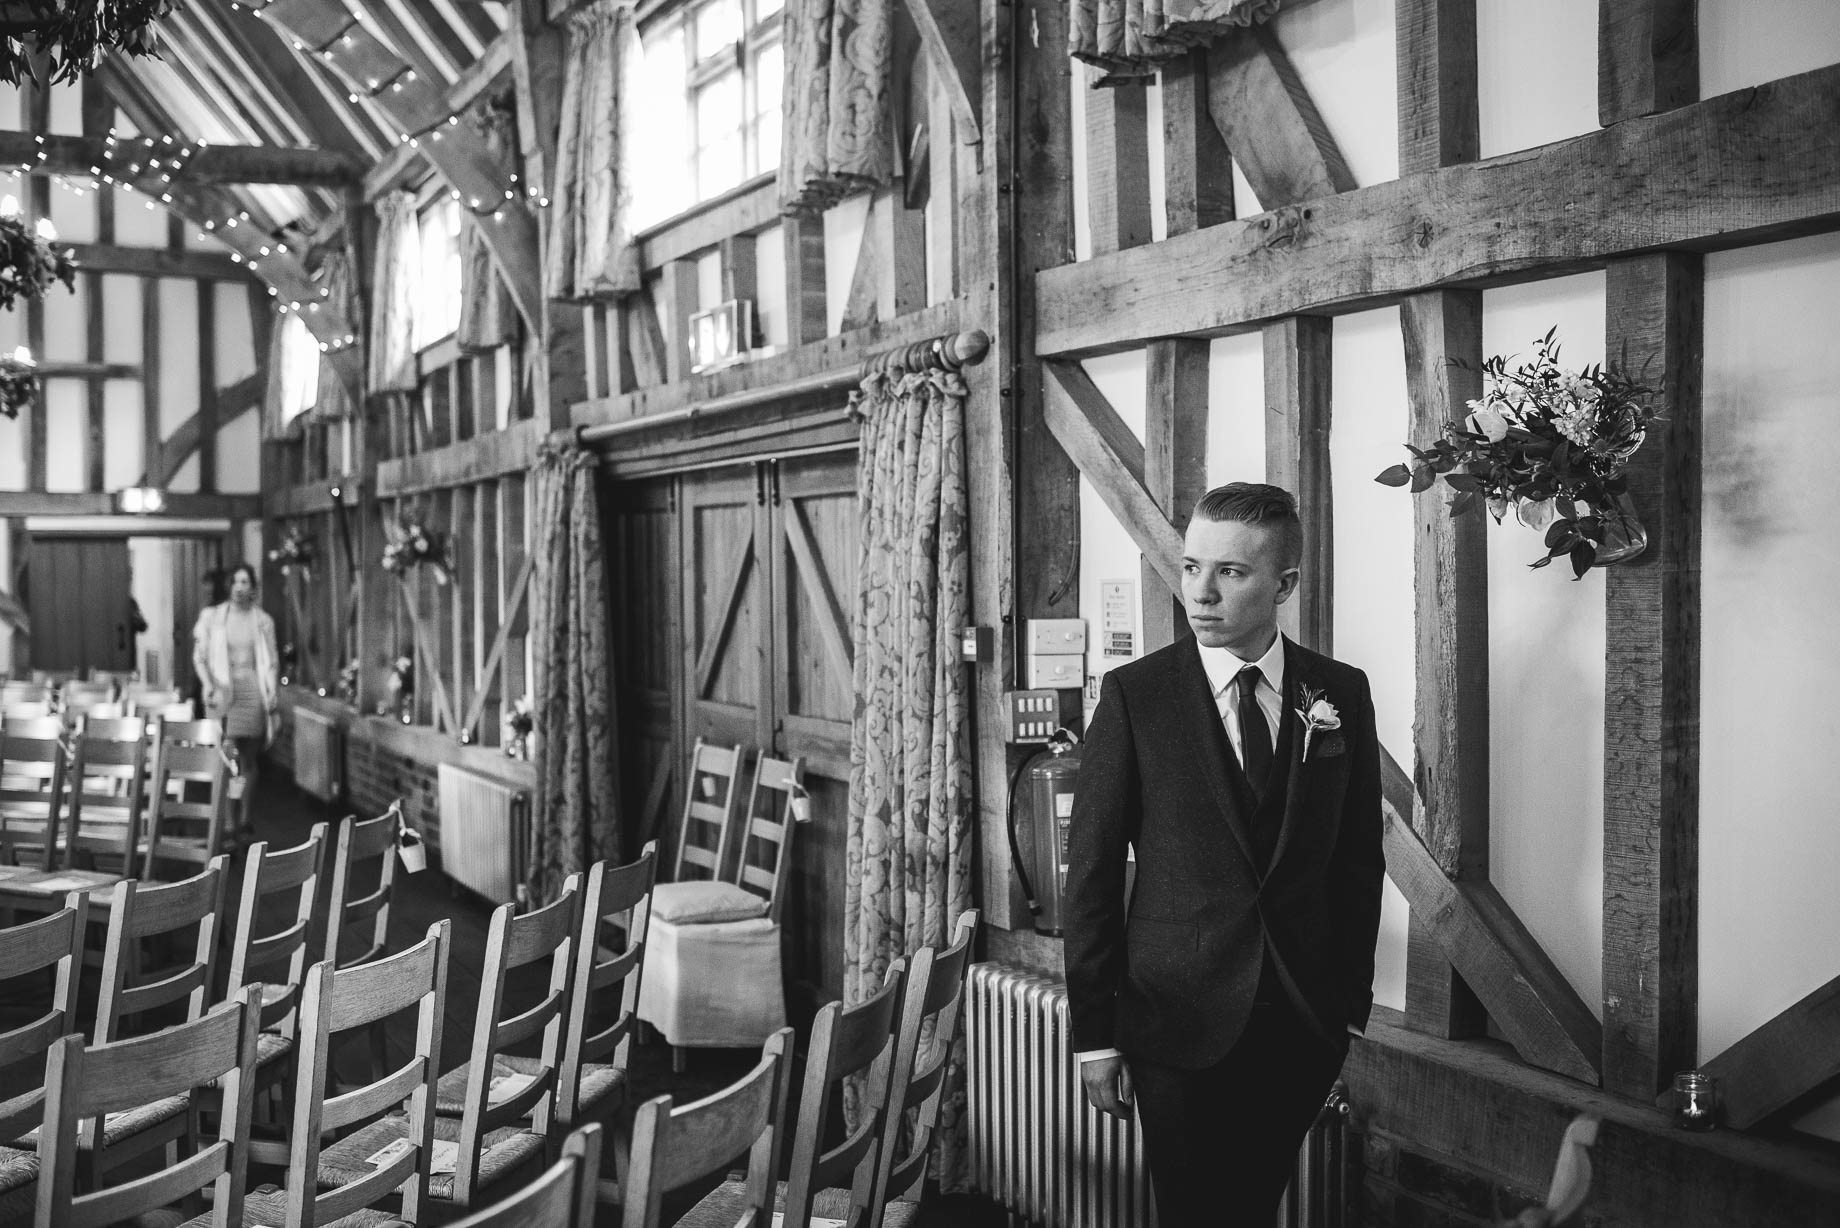 Surrey Wedding Photography by Guy Collier - Becca and James (23 of 145)